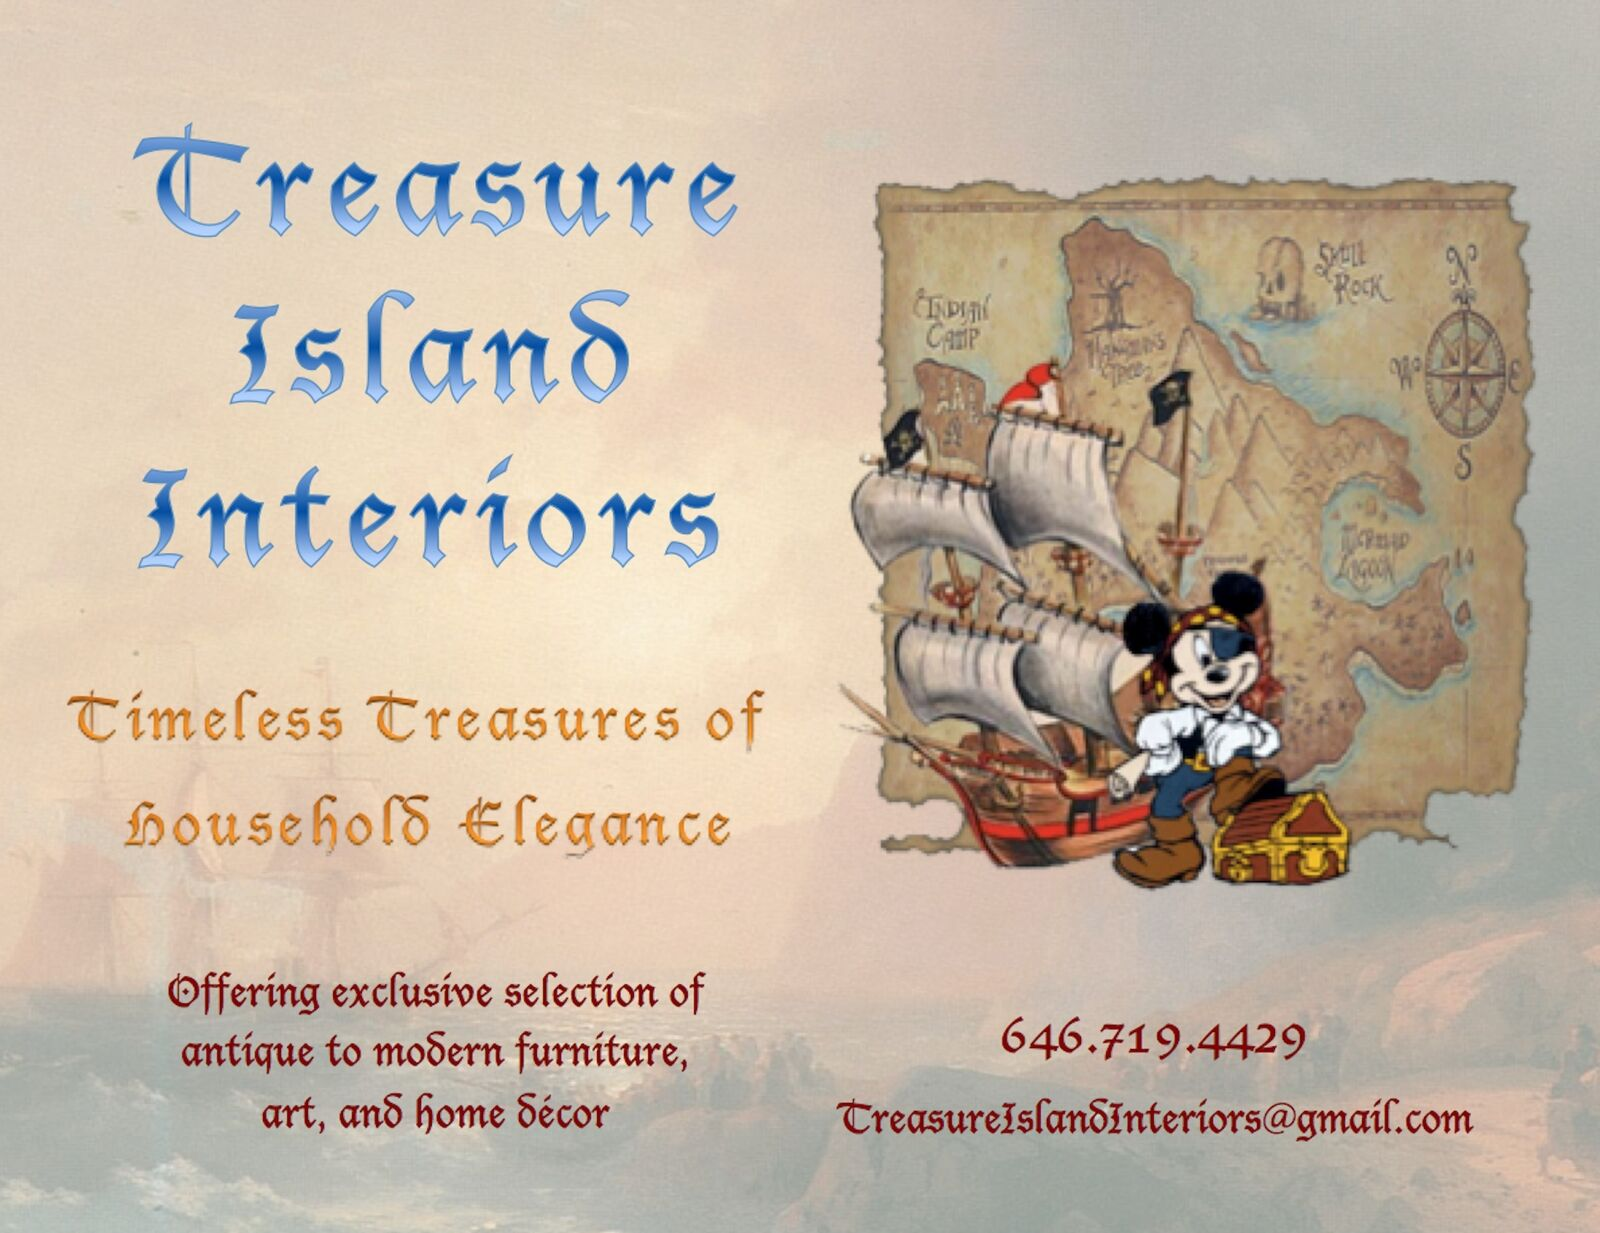 Treasure Island Interiors